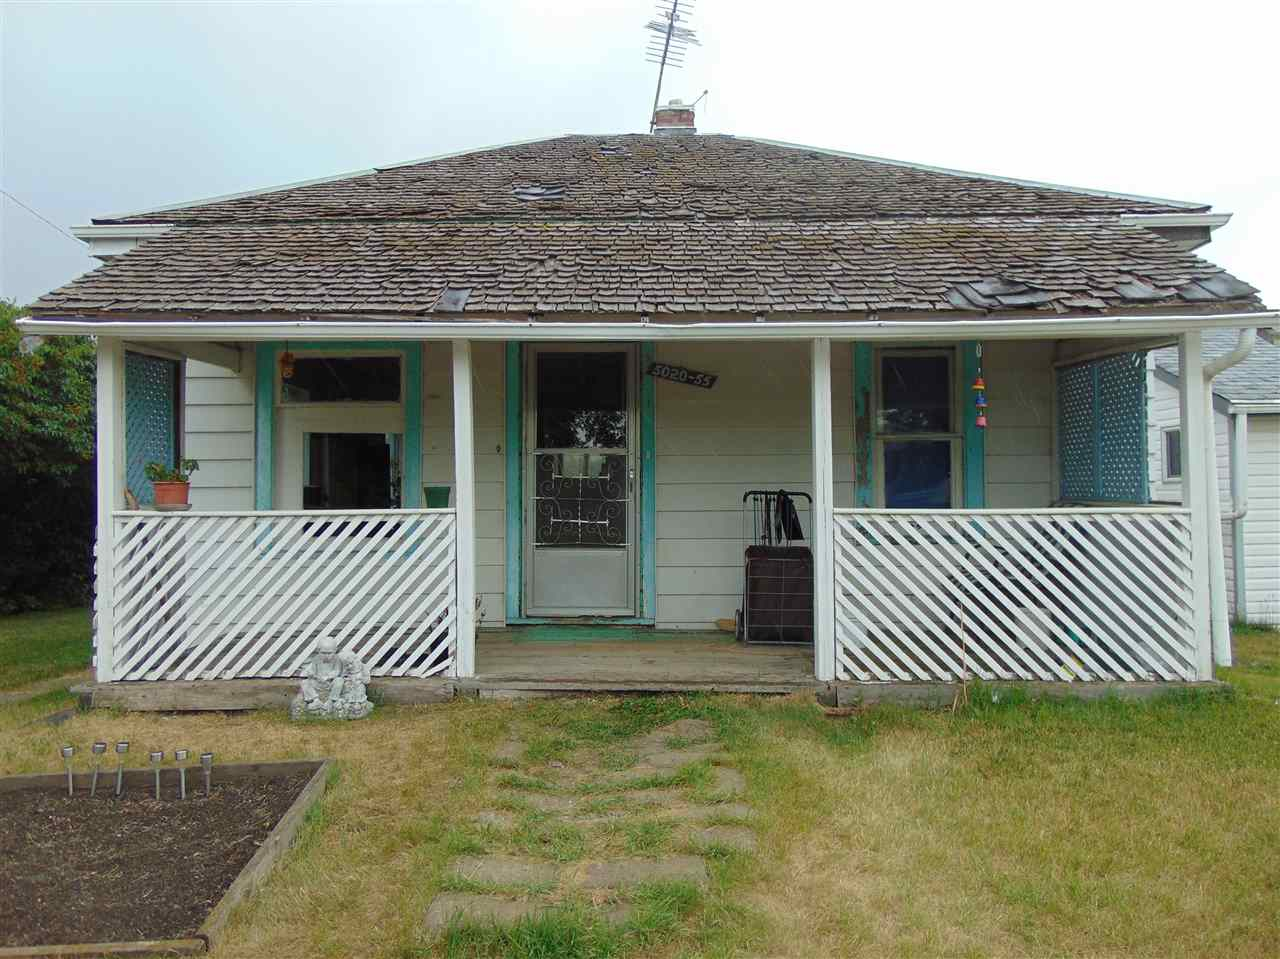 This two bedroom bungalow is located in a wonderful quiet neighbourhood of Tofield. The lot is spectacular in size 50ft x 140ft with friendly neighbours on all sides. Comes with one oversized shed and is sold as is. This could be a great project to renovate and bring life back to this lot.